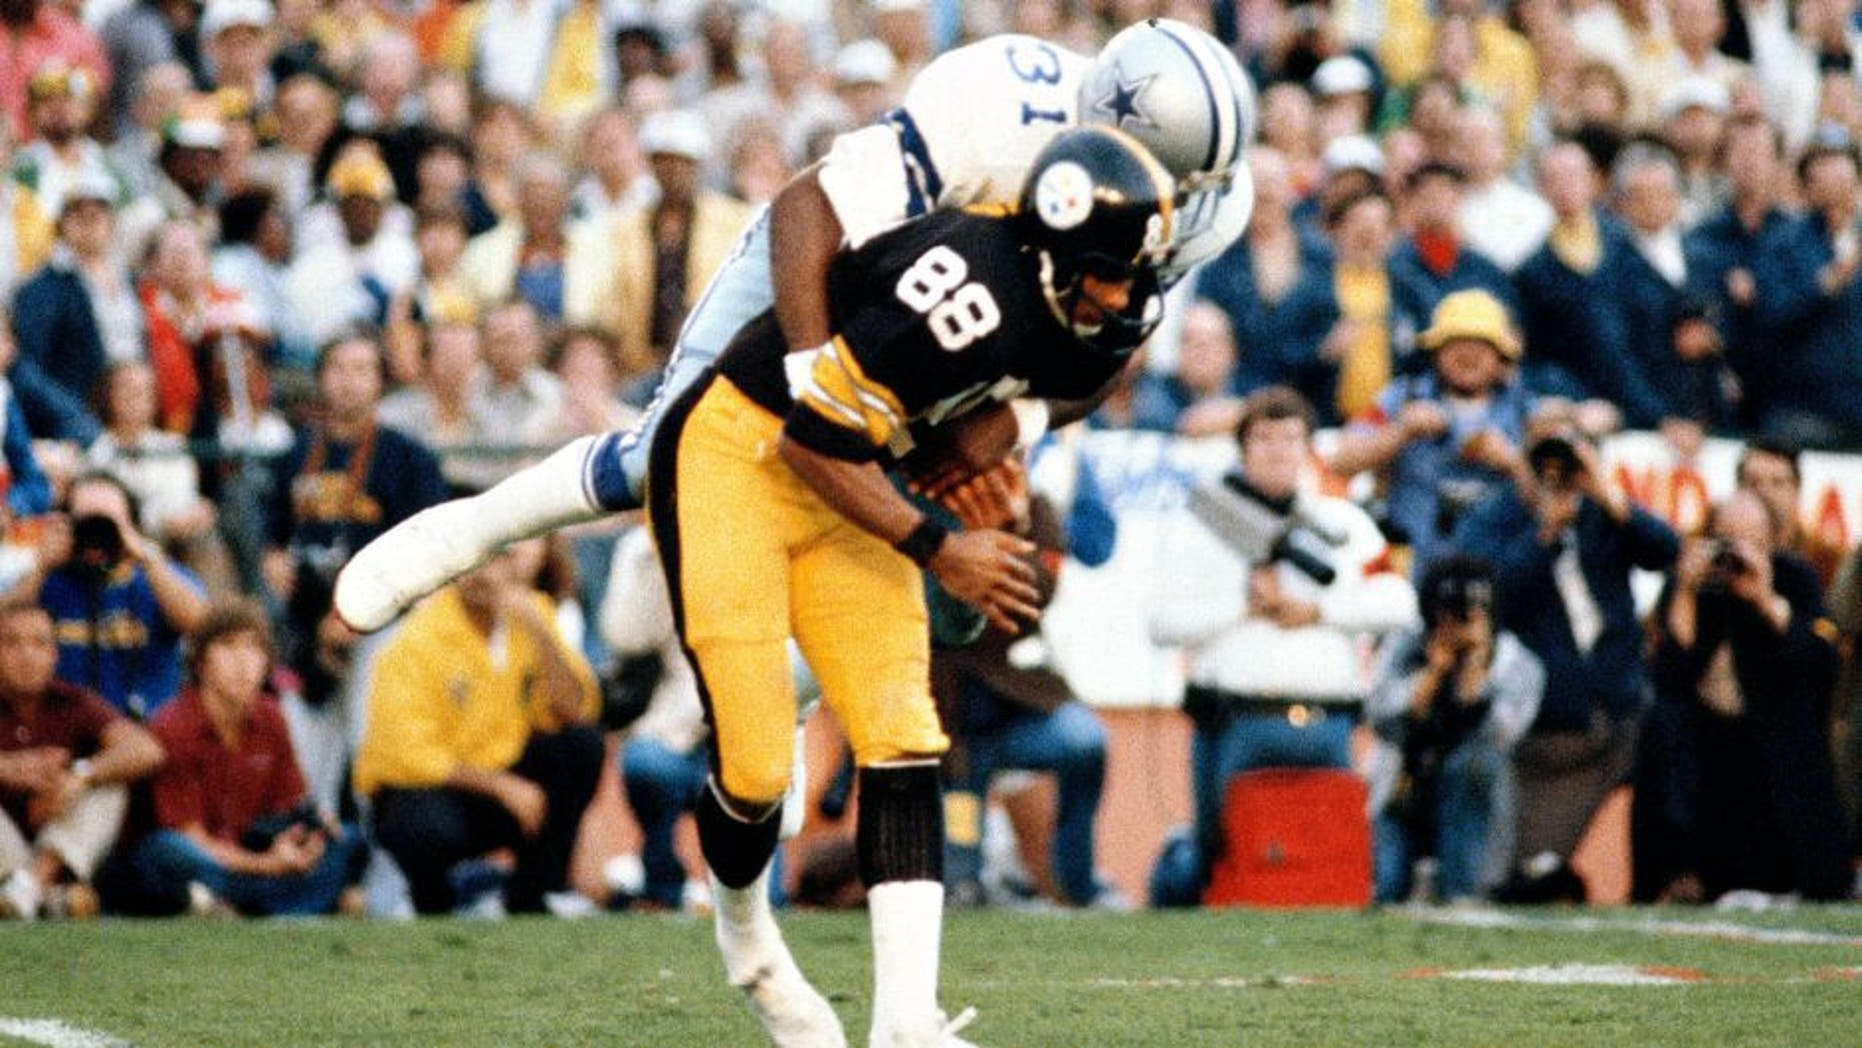 MIAMI, FL - JANUARY 21: Lynn Swann #88 of the Pittsburgh Steelers gets tackled by Benny Barnes #31 of the Dallas Cowboys during Super Bowl XIII on January 21, 1979 at the Orange Bowl in Miami, Florida. The Steelers won the Super Bowl 35-31. (Photo by Focus on Sport/Getty Images)